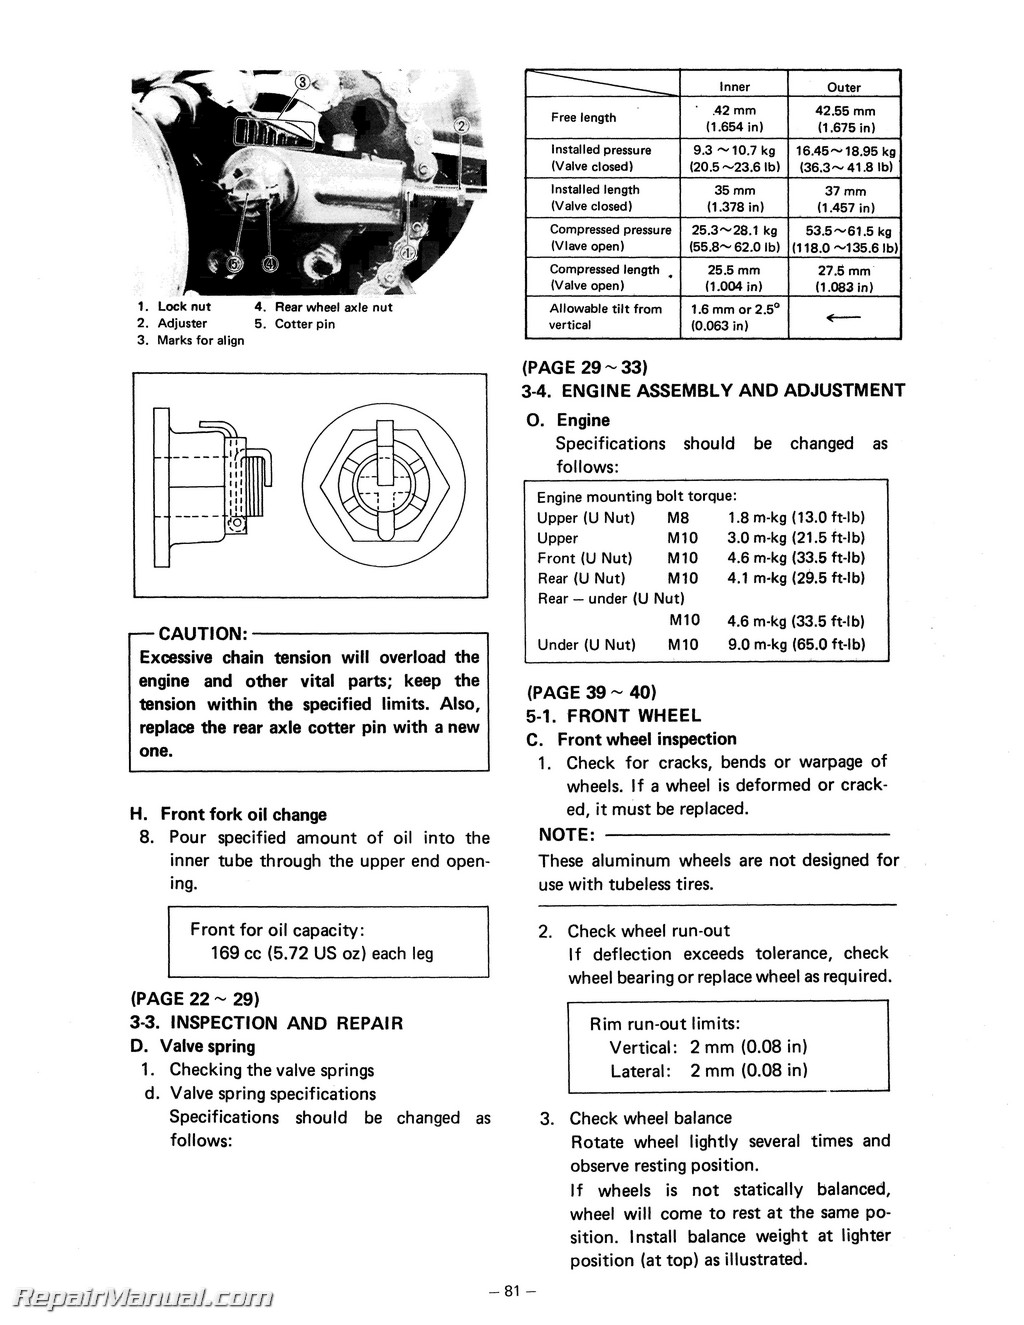 1978 1981 Yamaha Xs650 Service Manual Wiring Diagram 78 80